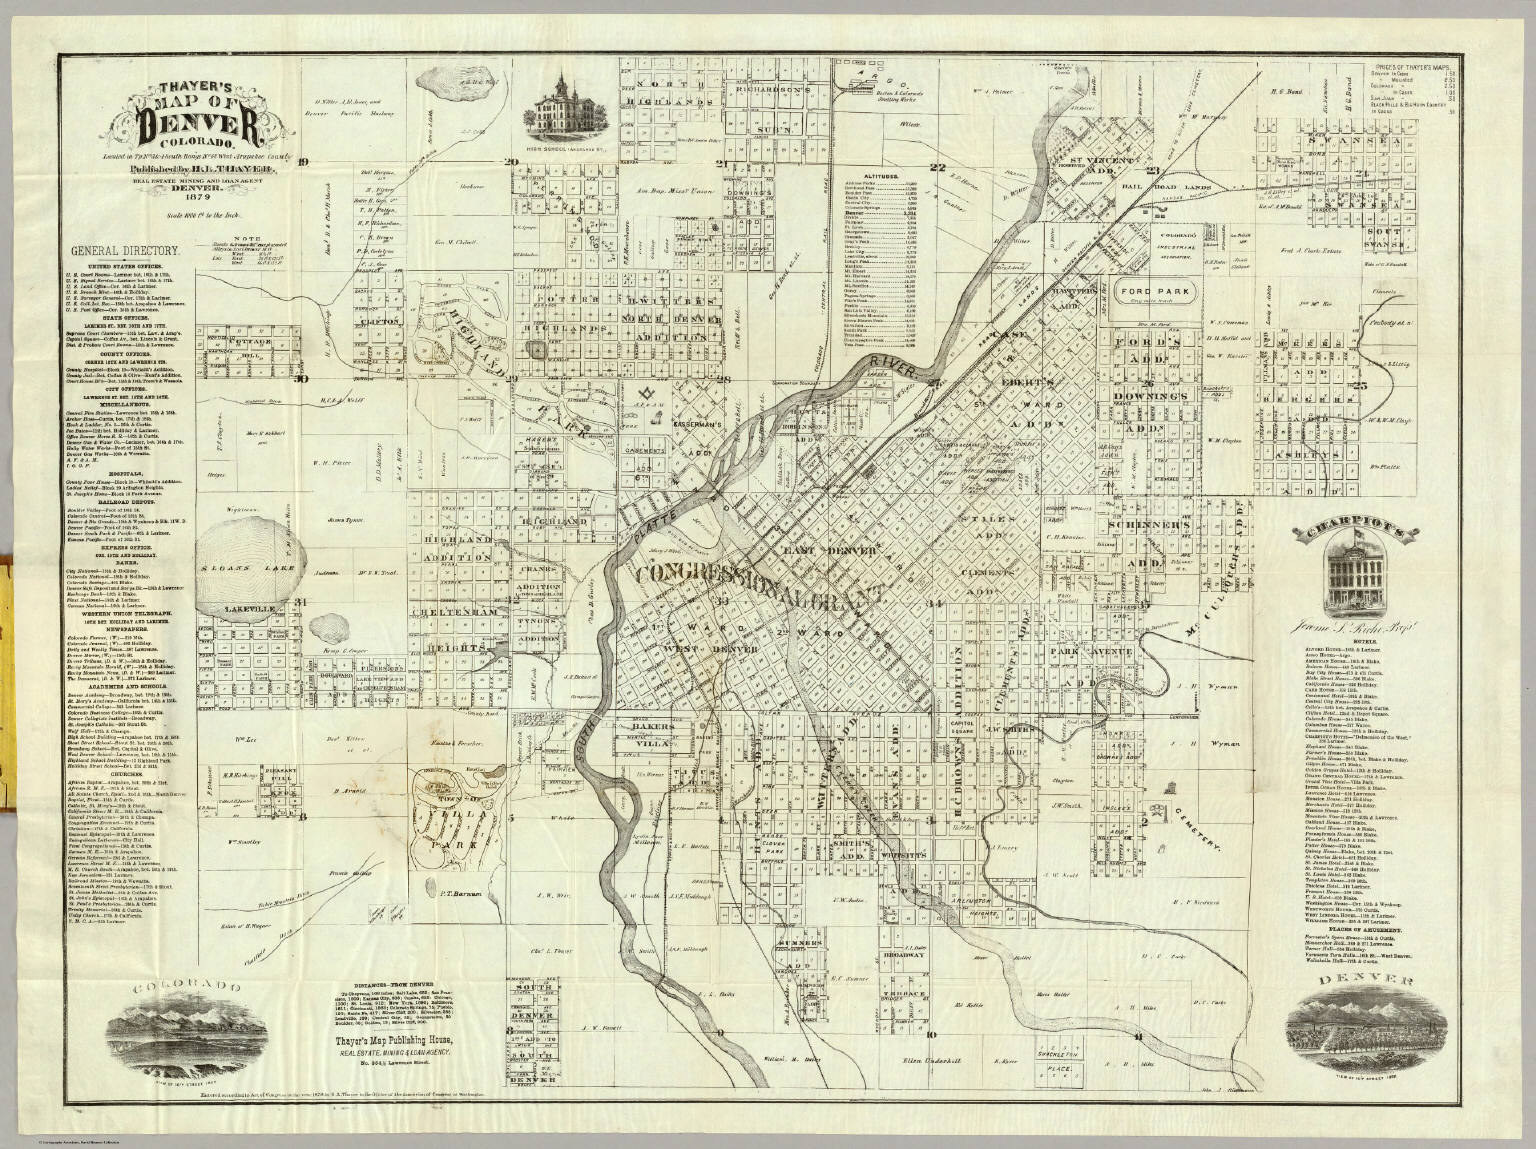 Thayer's Map of Denver Colorado (1879) from David Rumsey Historical Map Collection